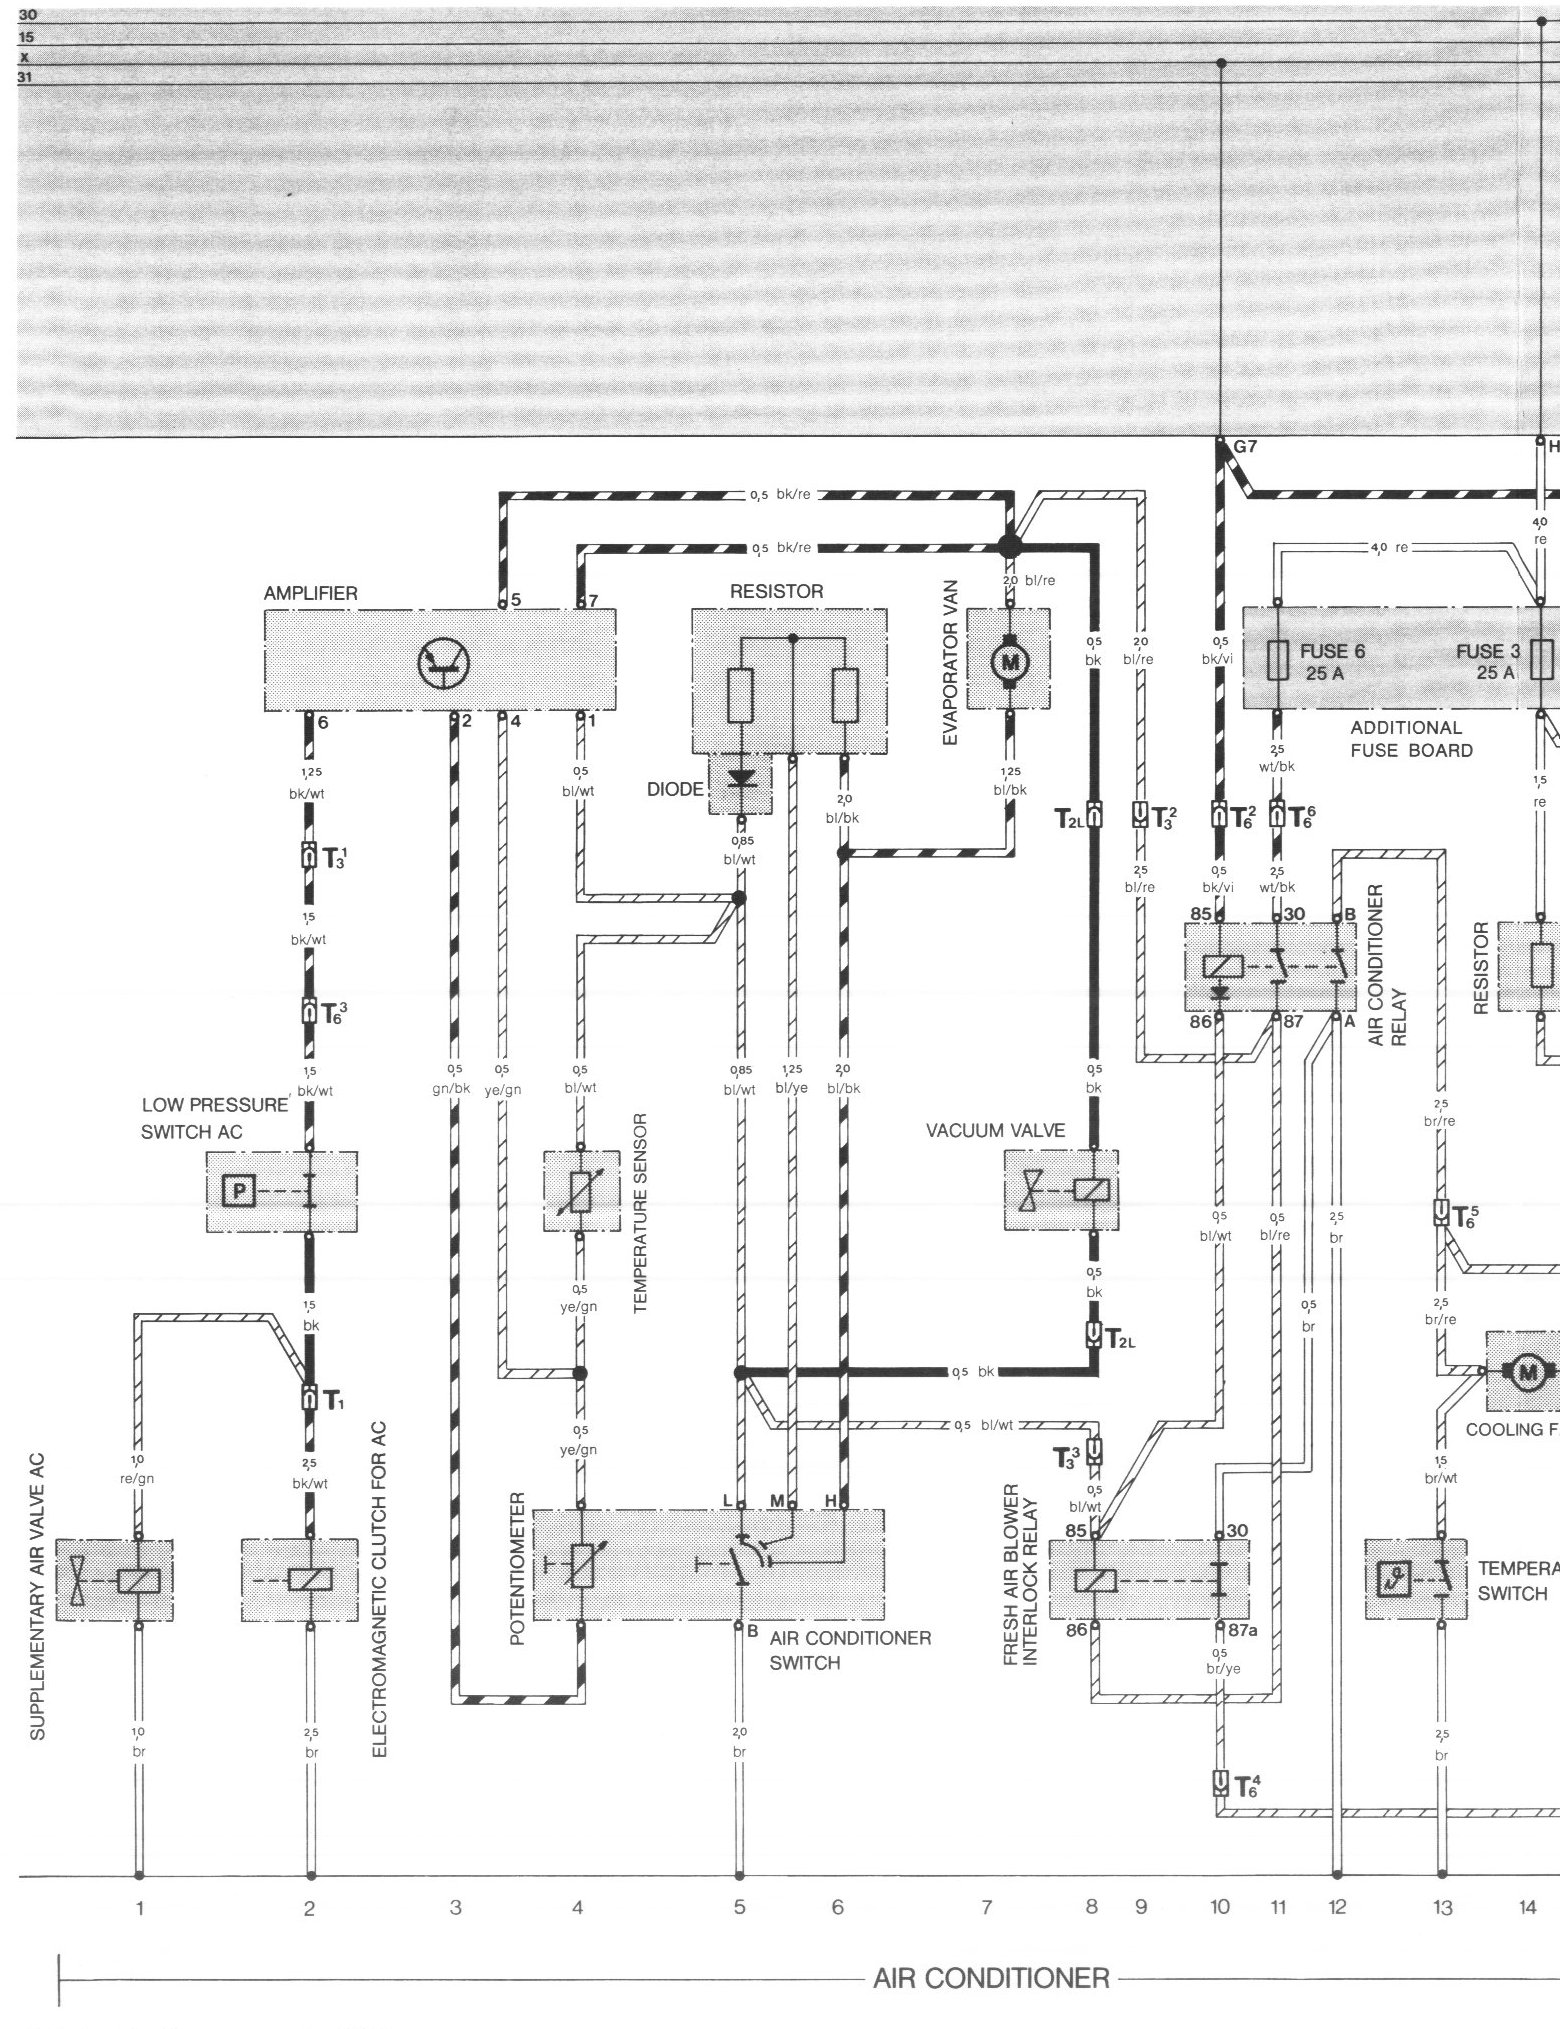 944_84_AC_1 pelican parts porsche 924 944 electrical diagrams 1984 porsche 911 wiring diagram at gsmx.co